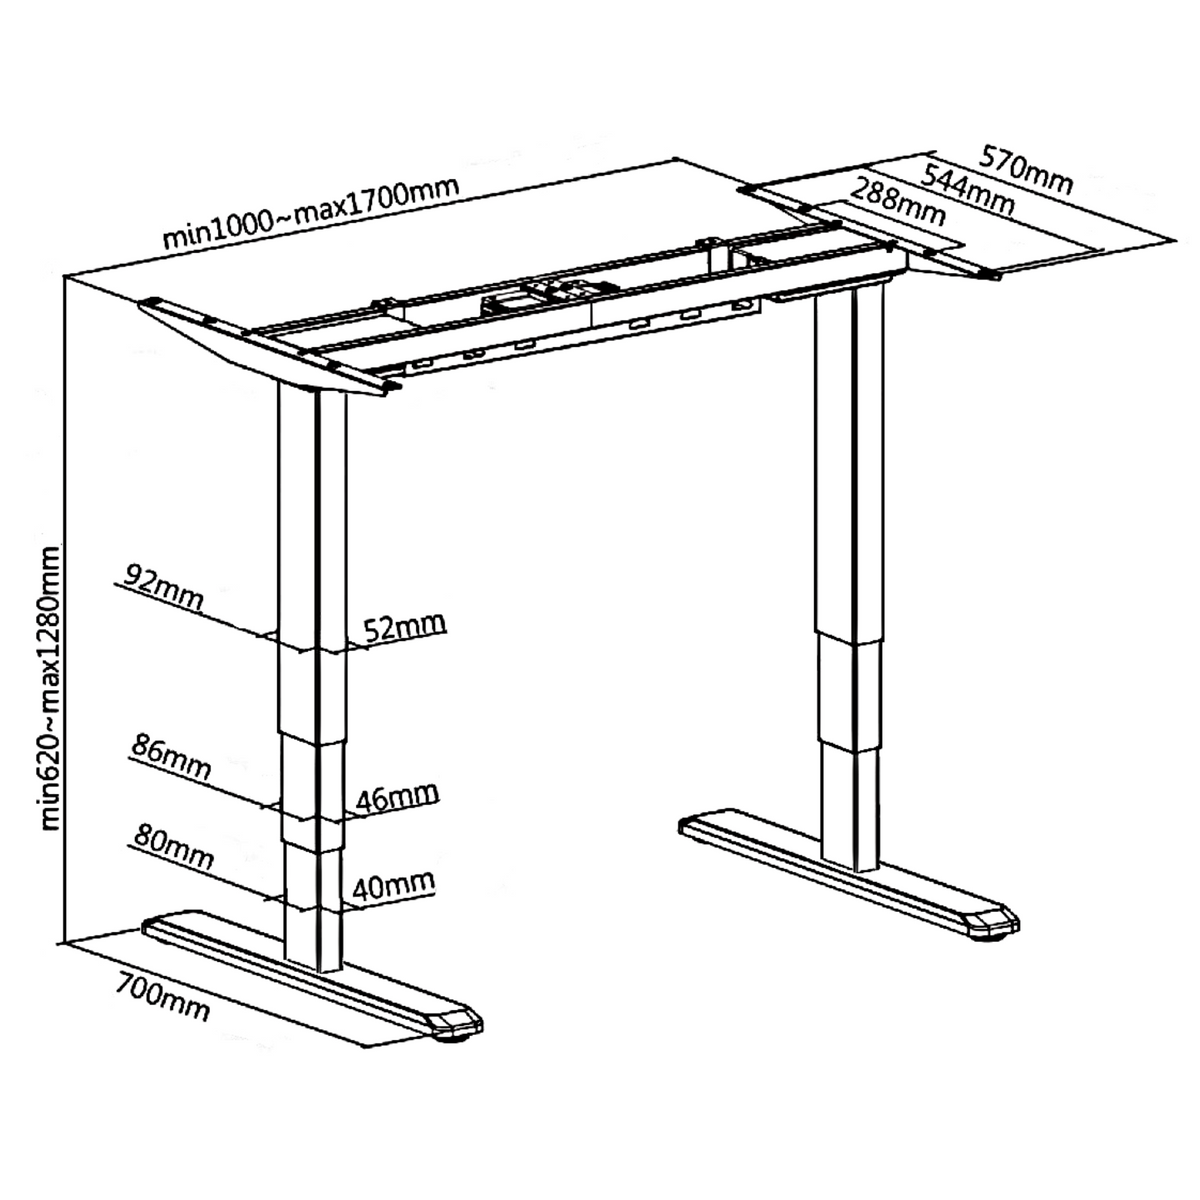 Dimensions for Electric Office Sit Stand Desk